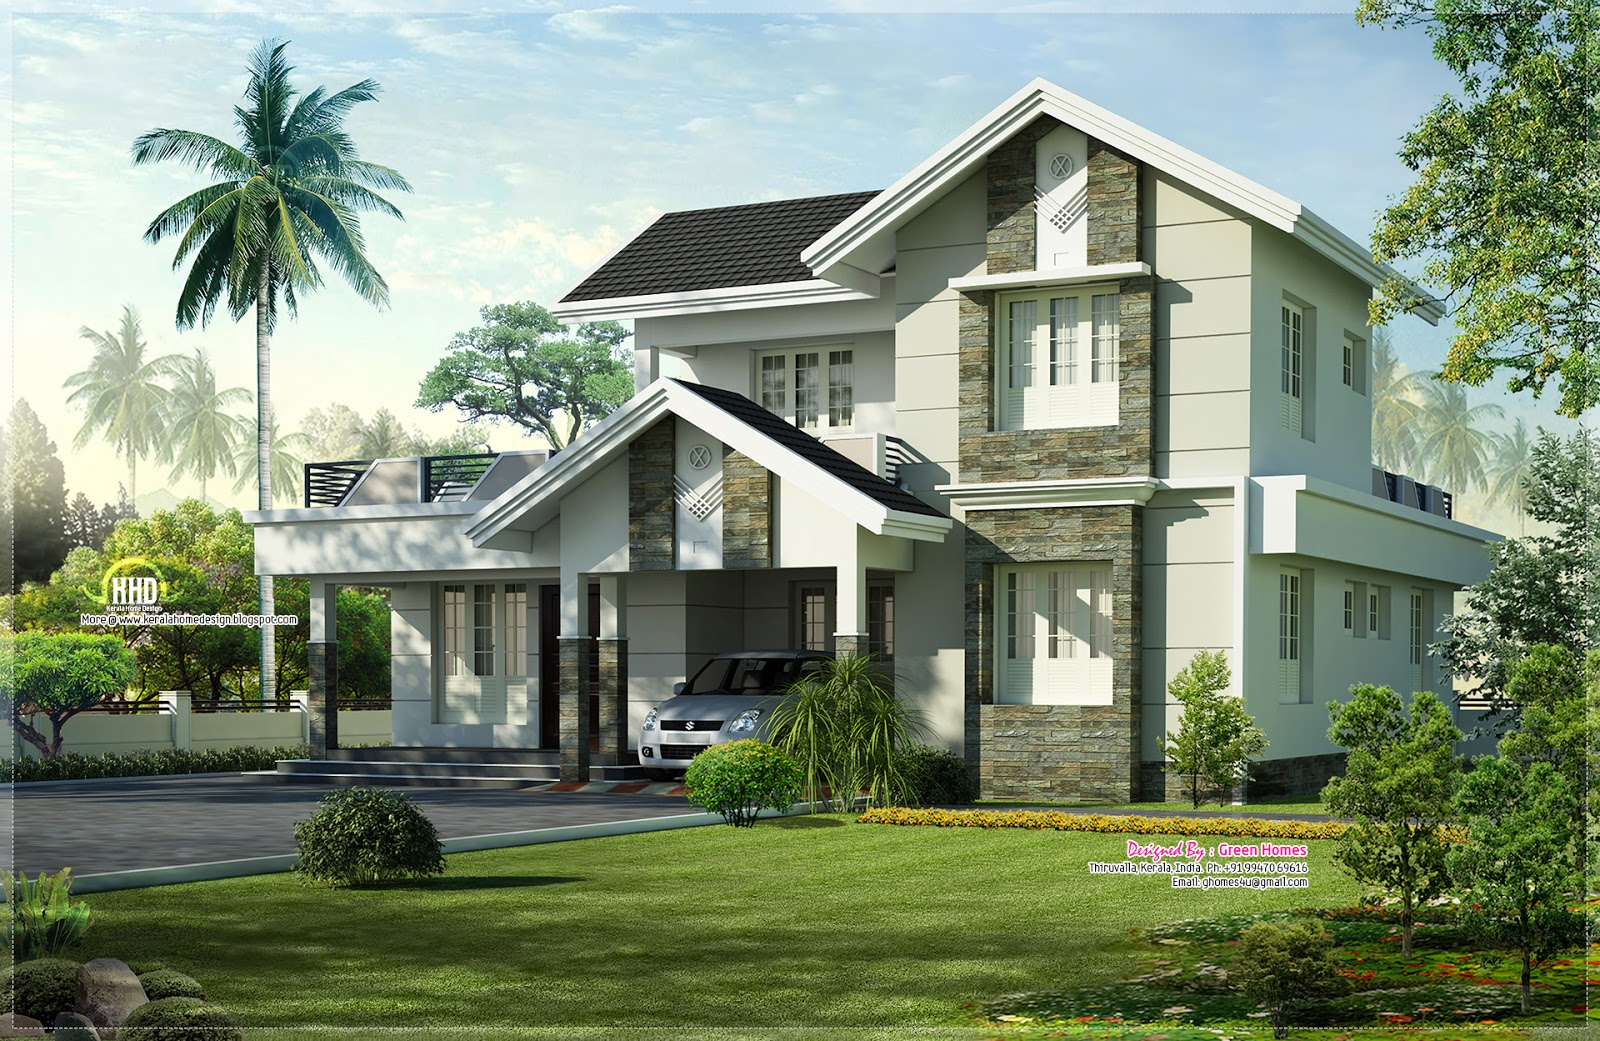 1975 nice home exterior design home kerala plans for House exterior ideas